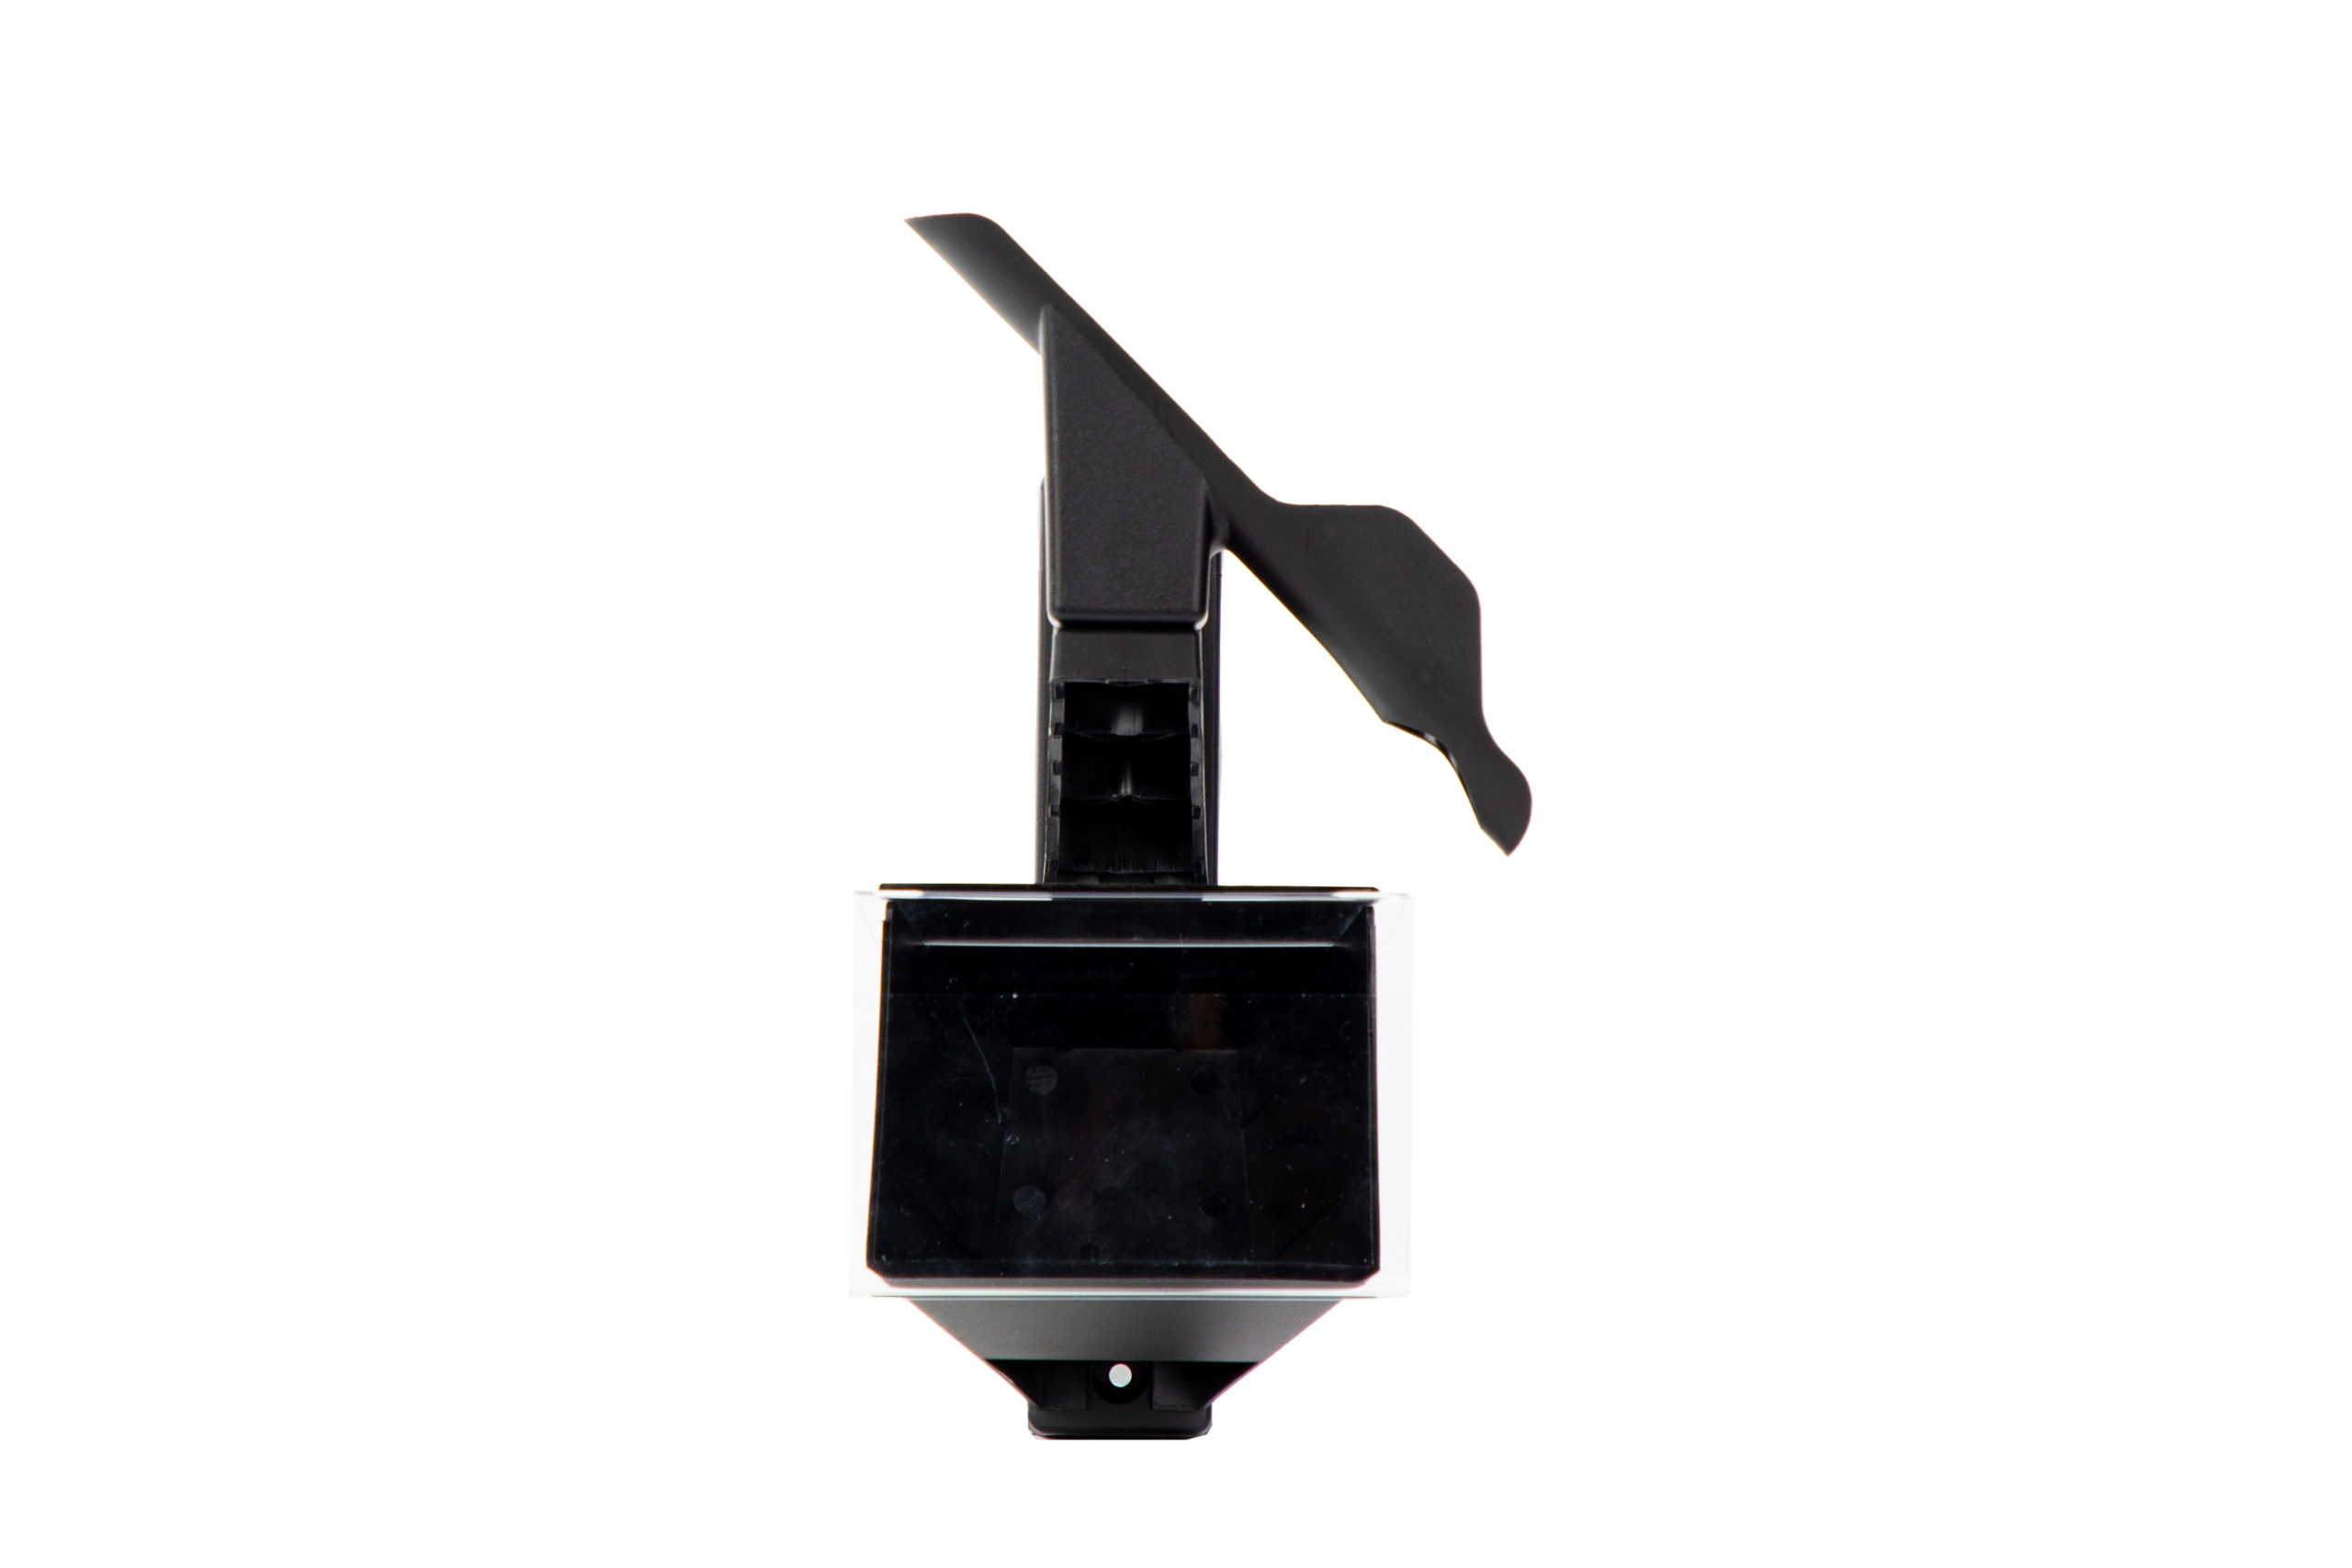 Studio image of memory mount - head-on front view